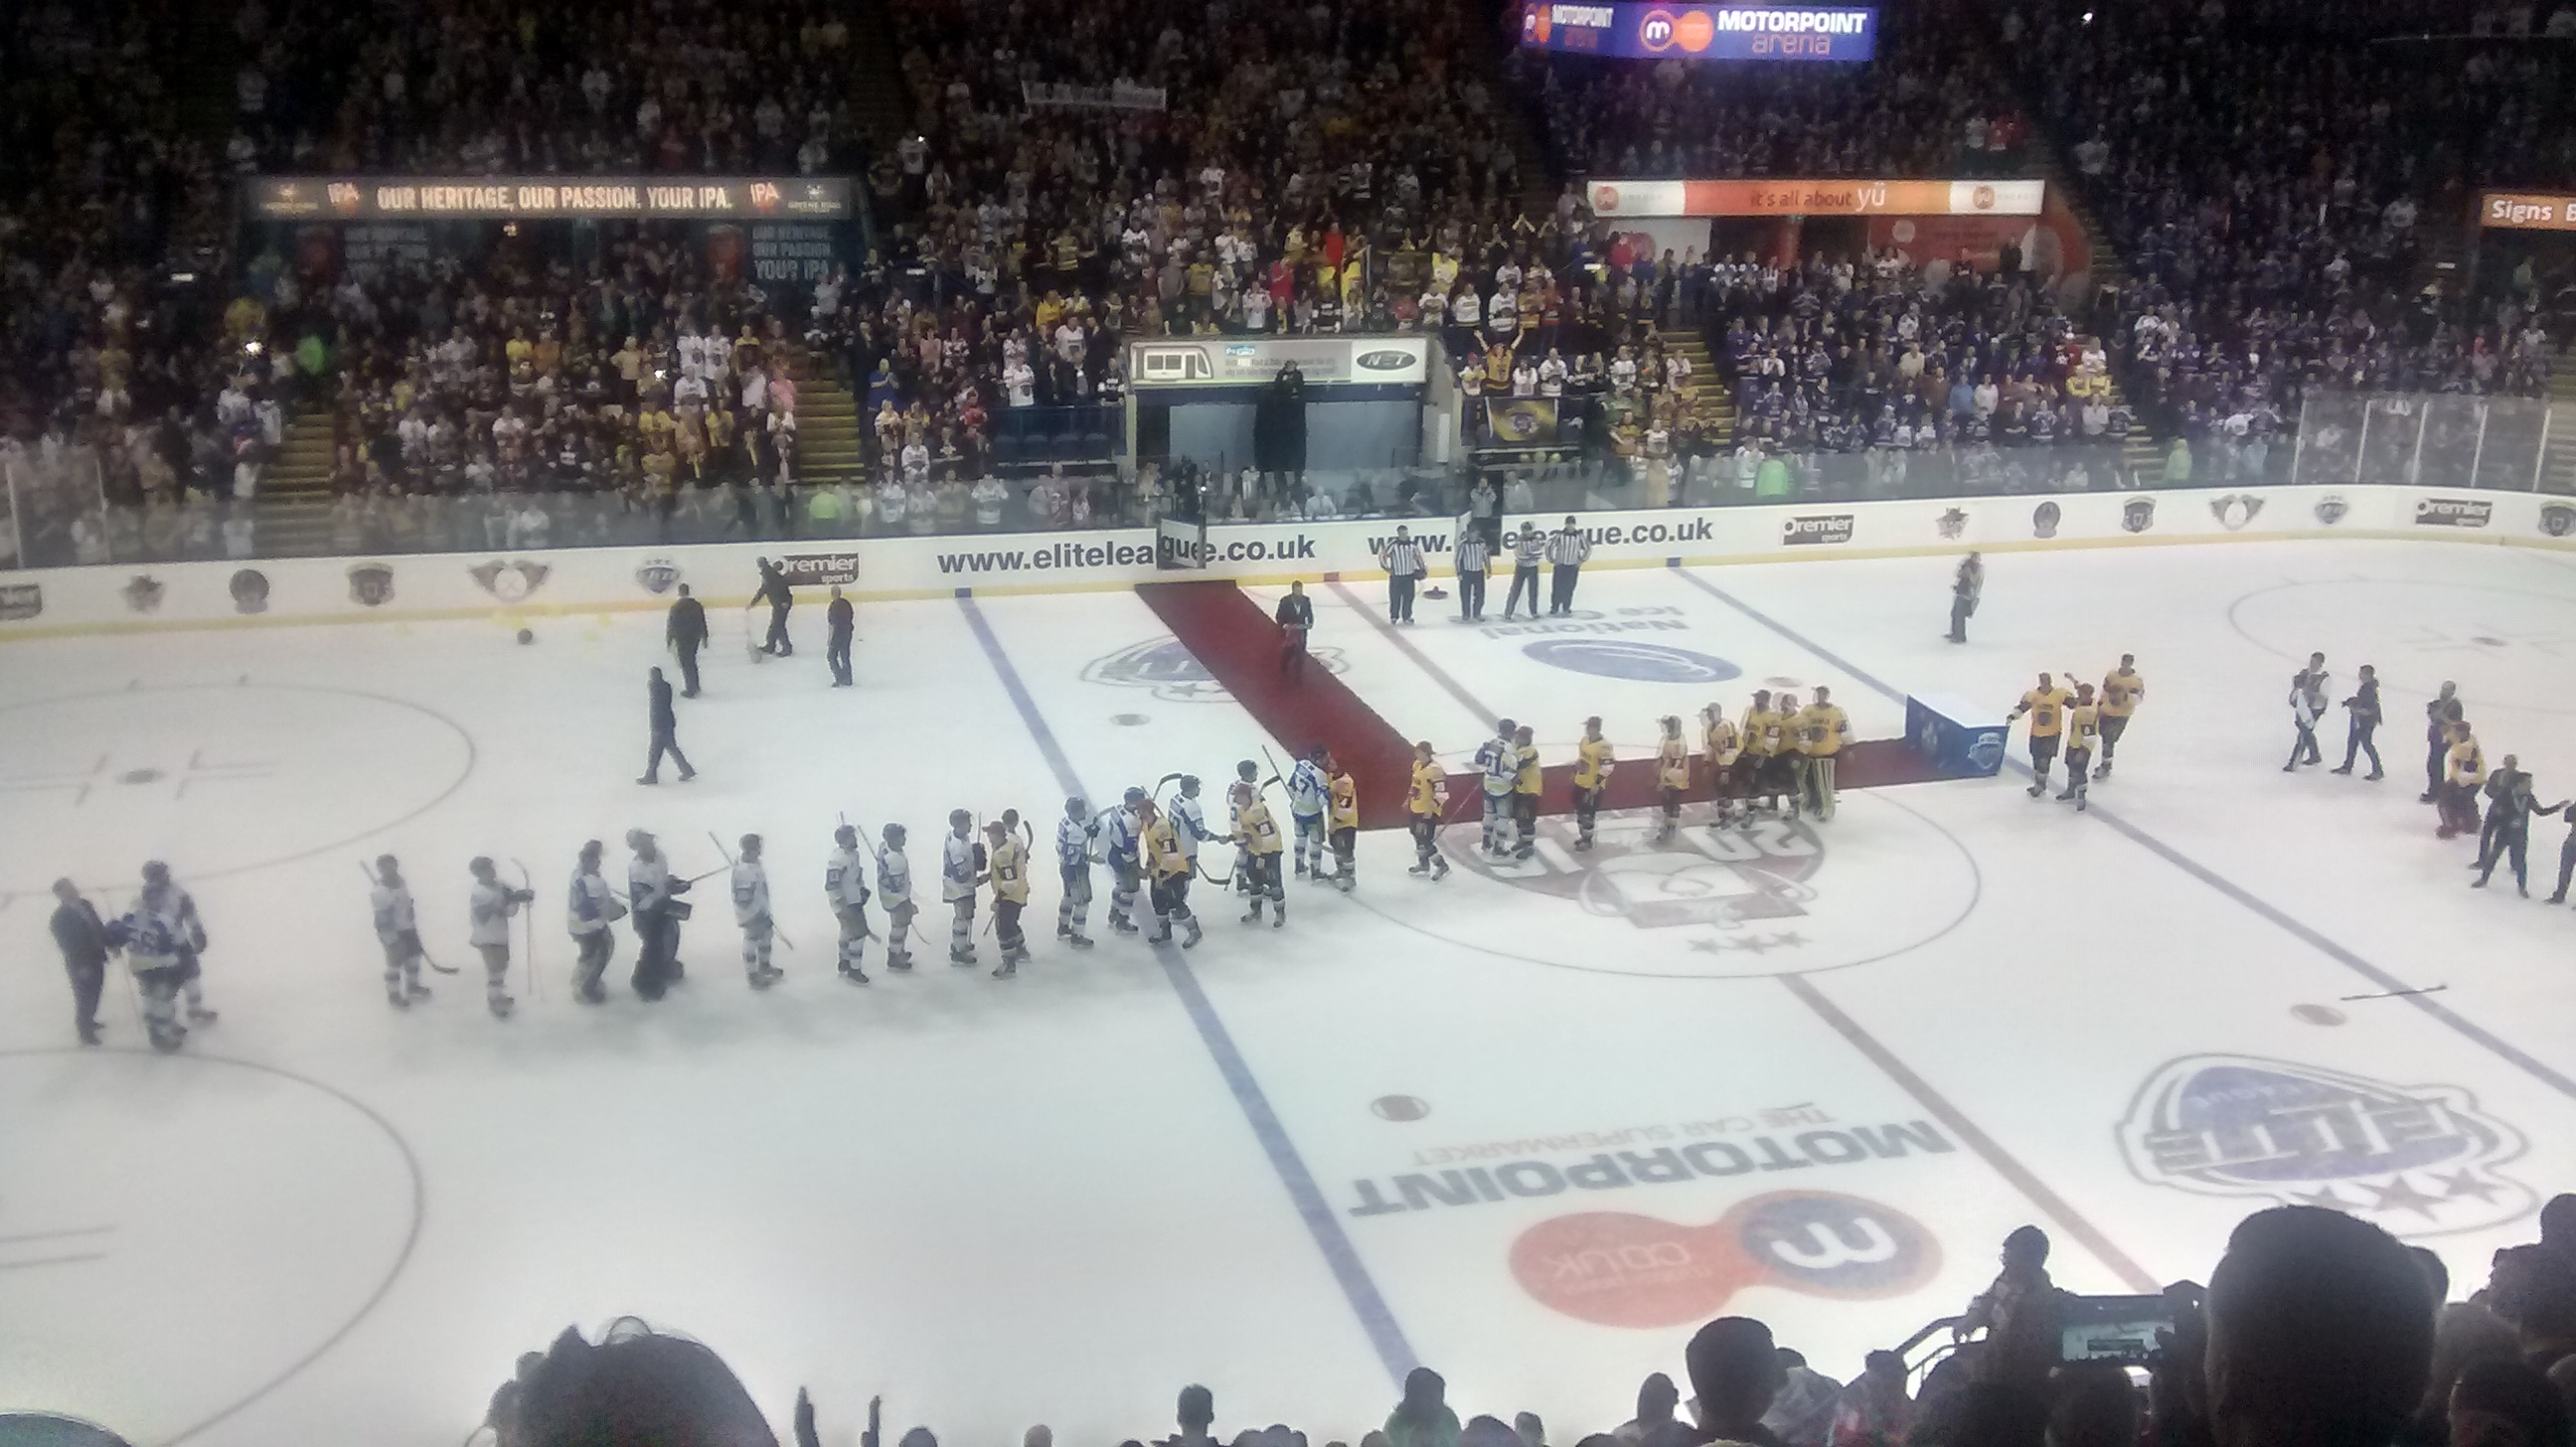 The two teams shake hands as Nottingham emerge as victors.